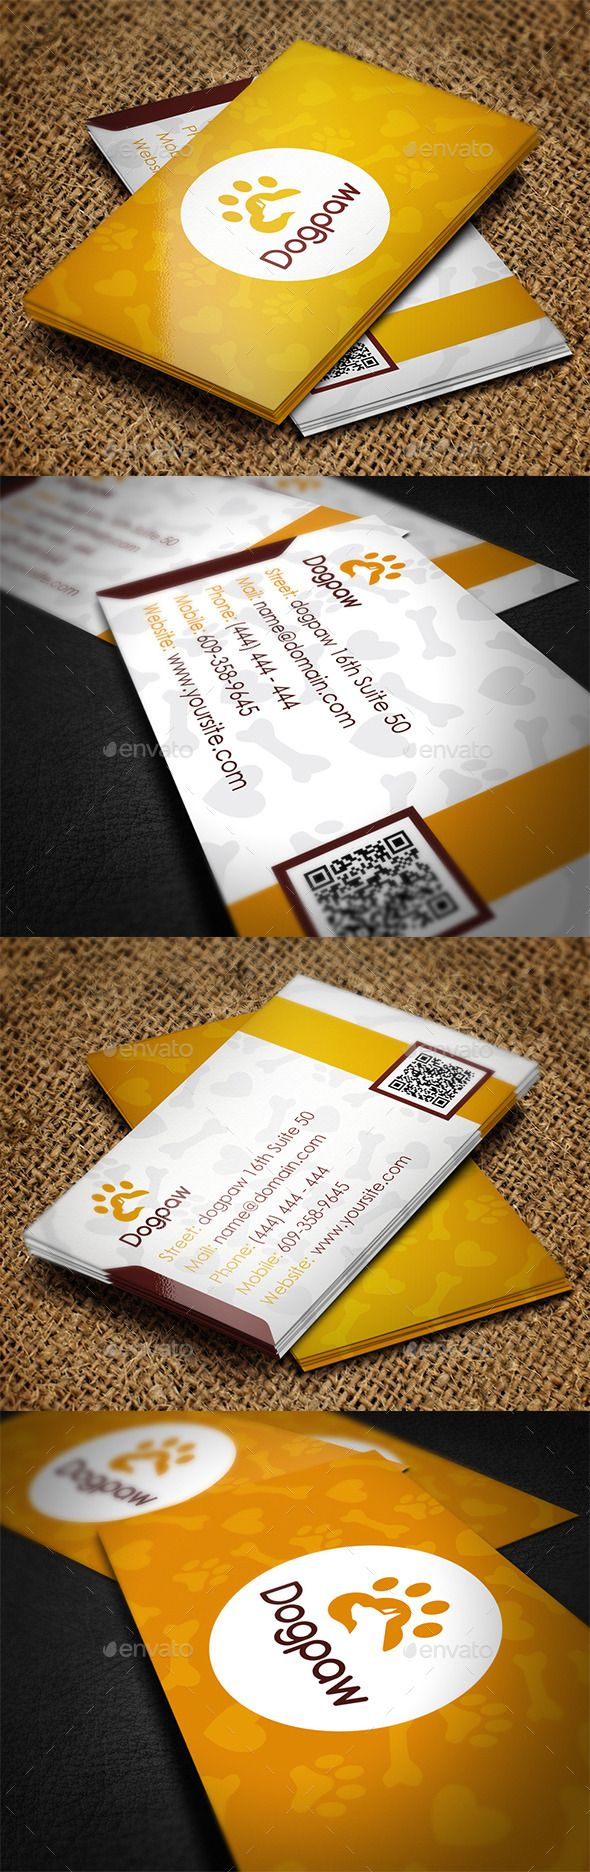 225 Best Business Card Logo Images On Pinterest Therapy Dogs